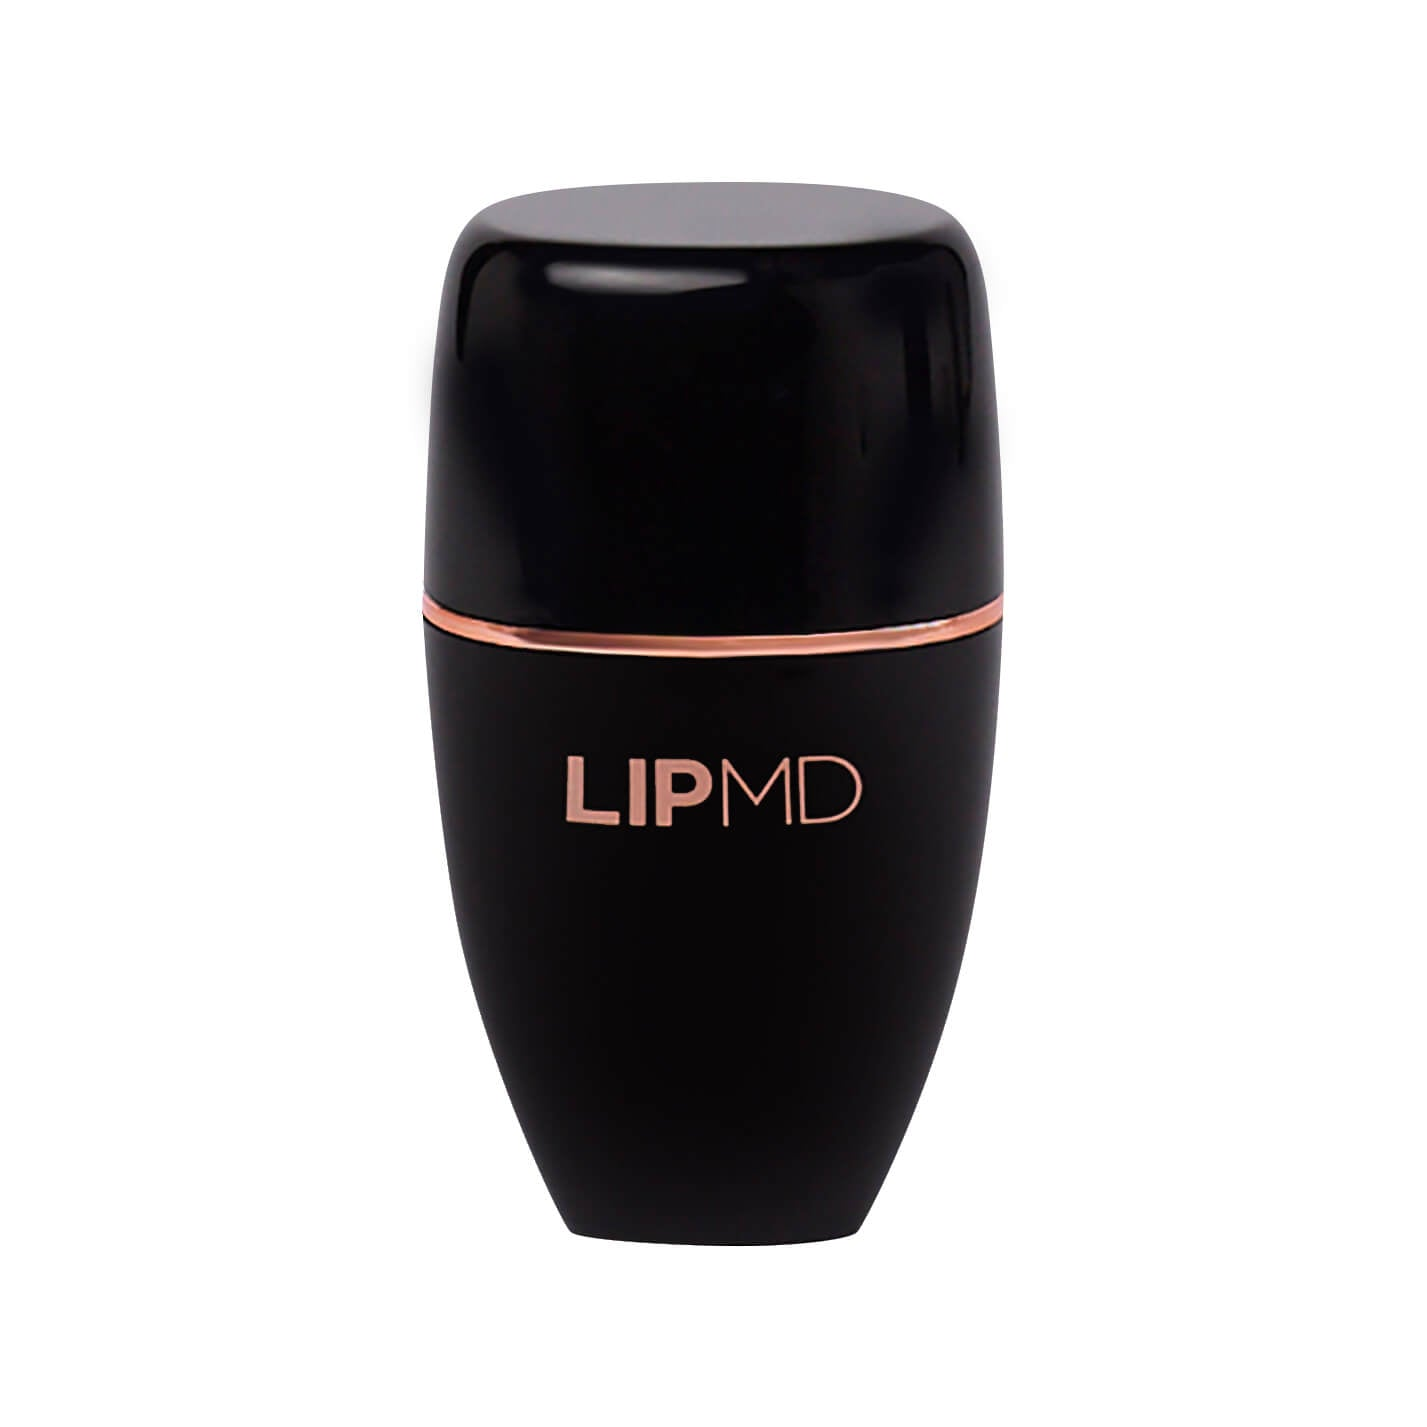 LIMITED LAUNCH OFFER! LIPMD® + FREE Serum Gift Results guaranteed!